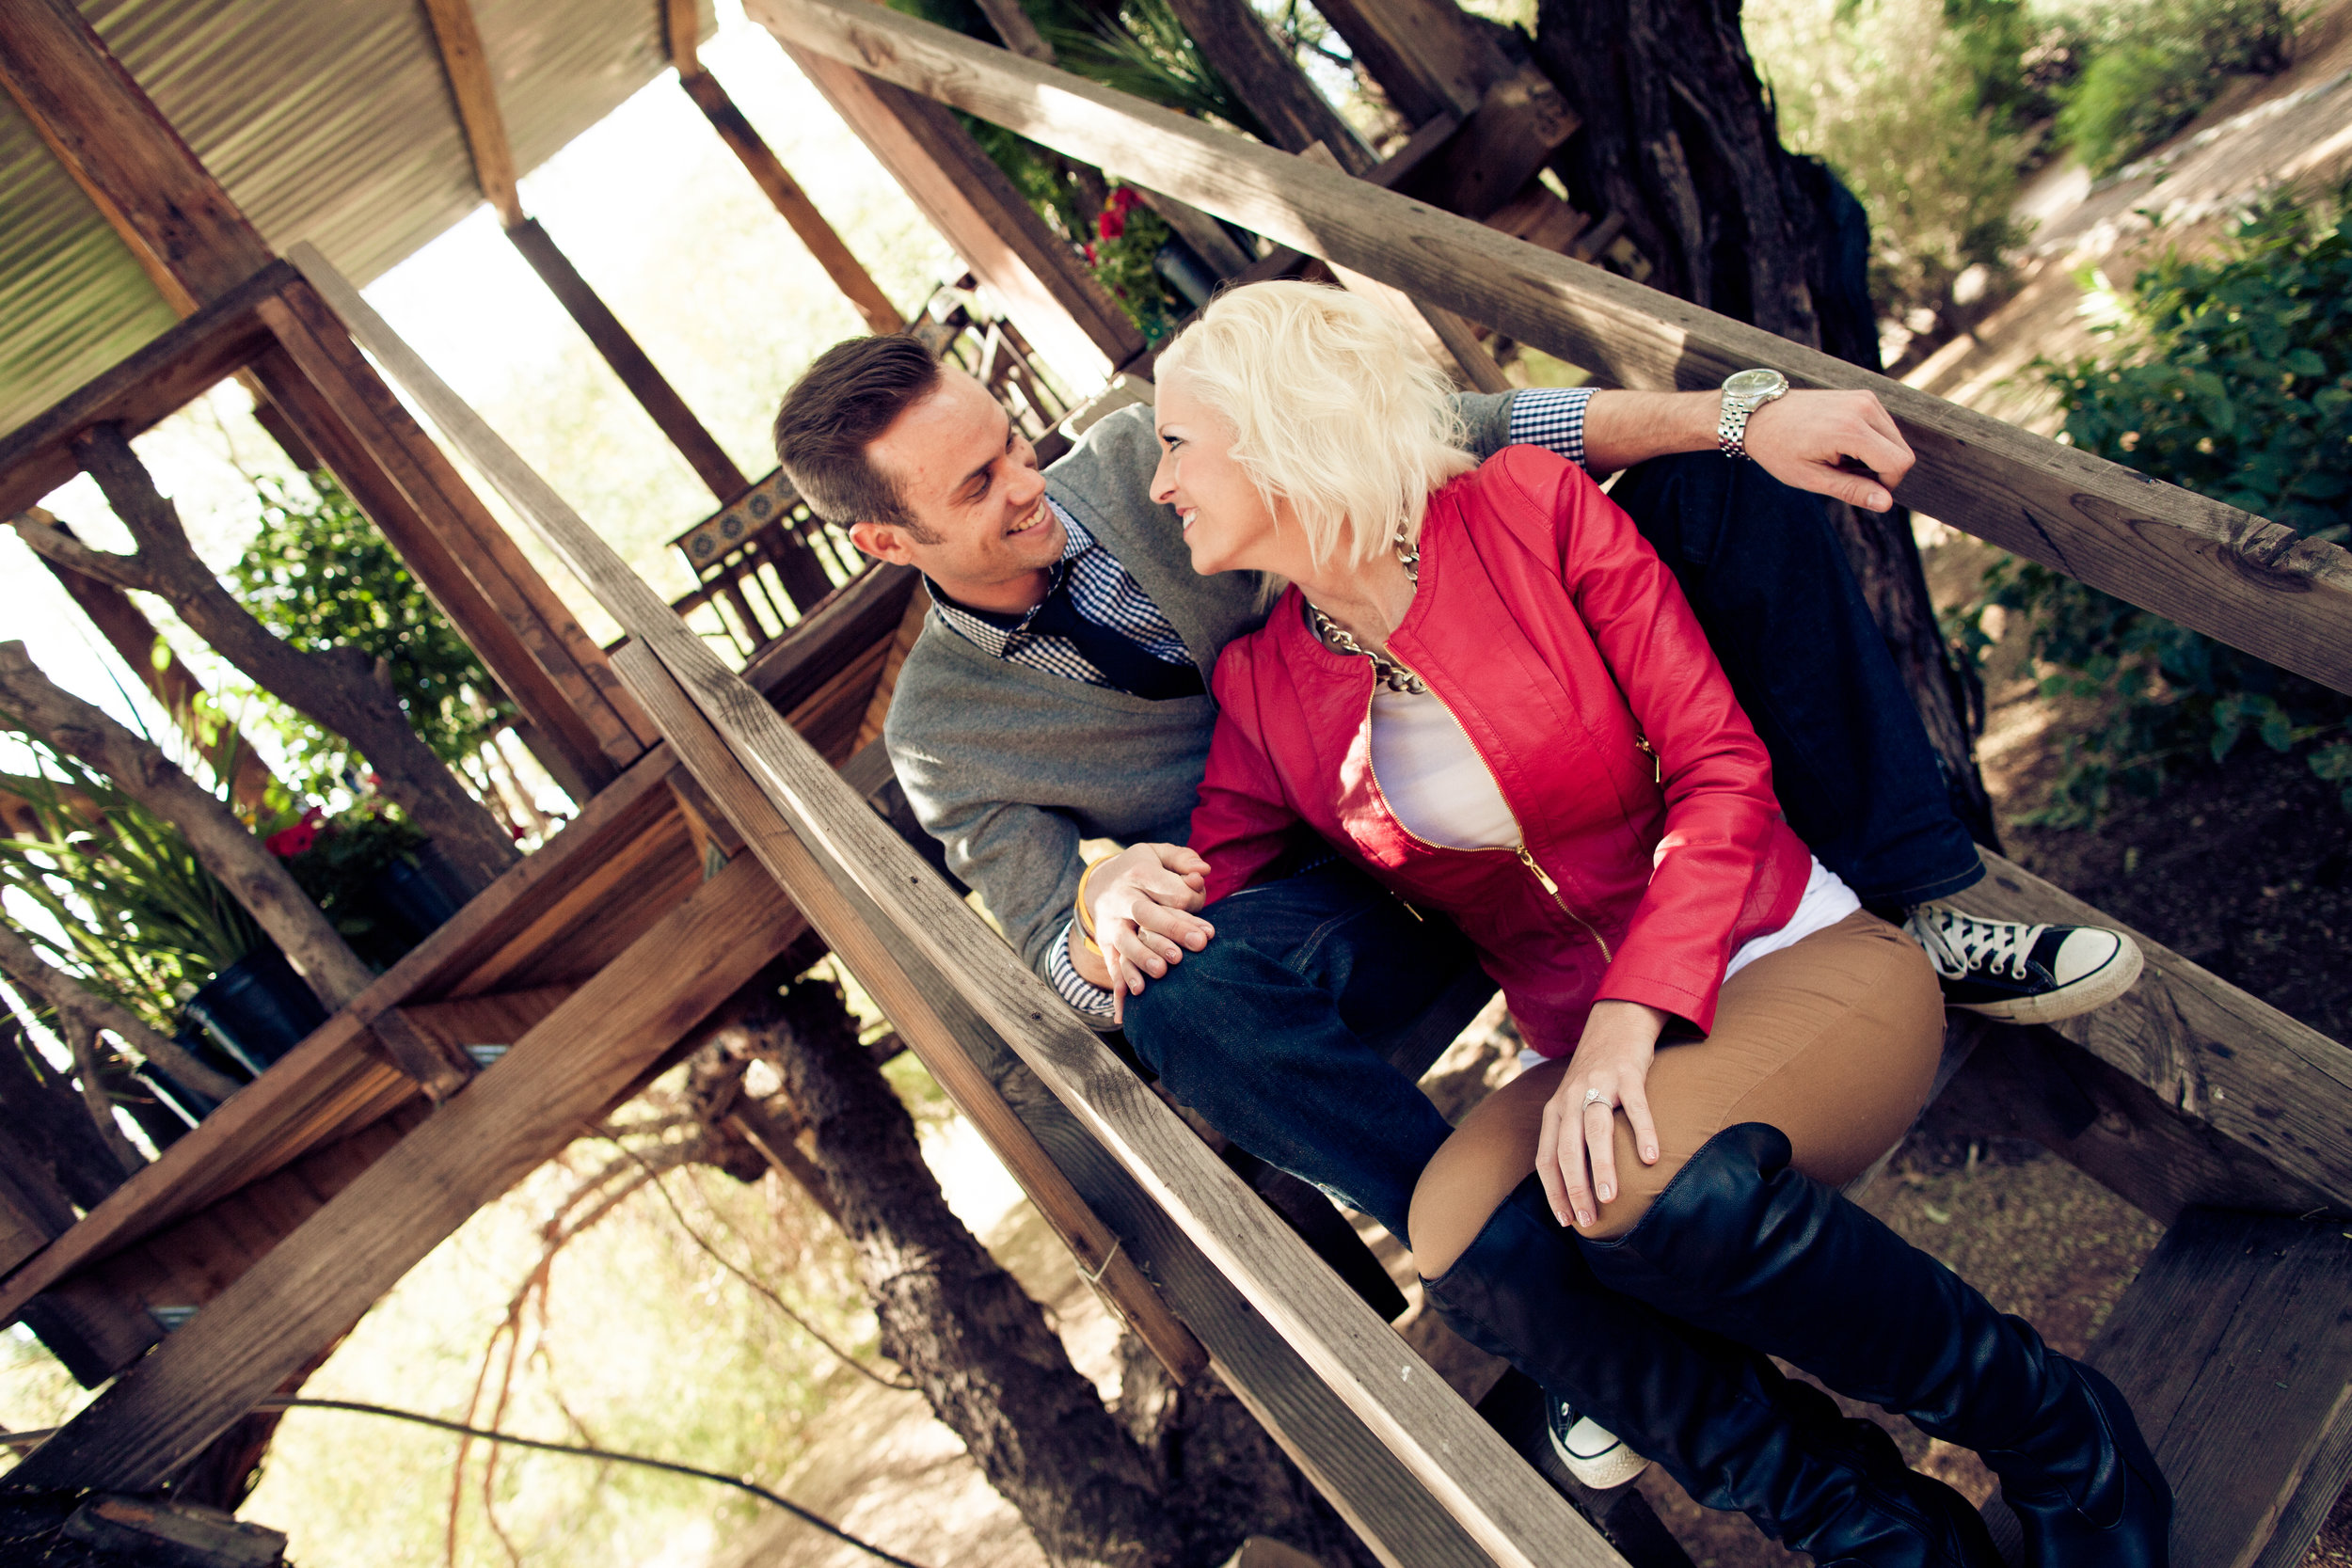 The Sweetest Treehouse Proposal in Phoenix, AZ: Our Engagement Story - Konsider It Done- AZ Arizona Wedding & Event Planner, Designer, Coordinator Planning in Scottsdale, Phoenix, Paradise Valley, Tempe, Gilbert, Mesa, Chandler, Tucson, Sedona